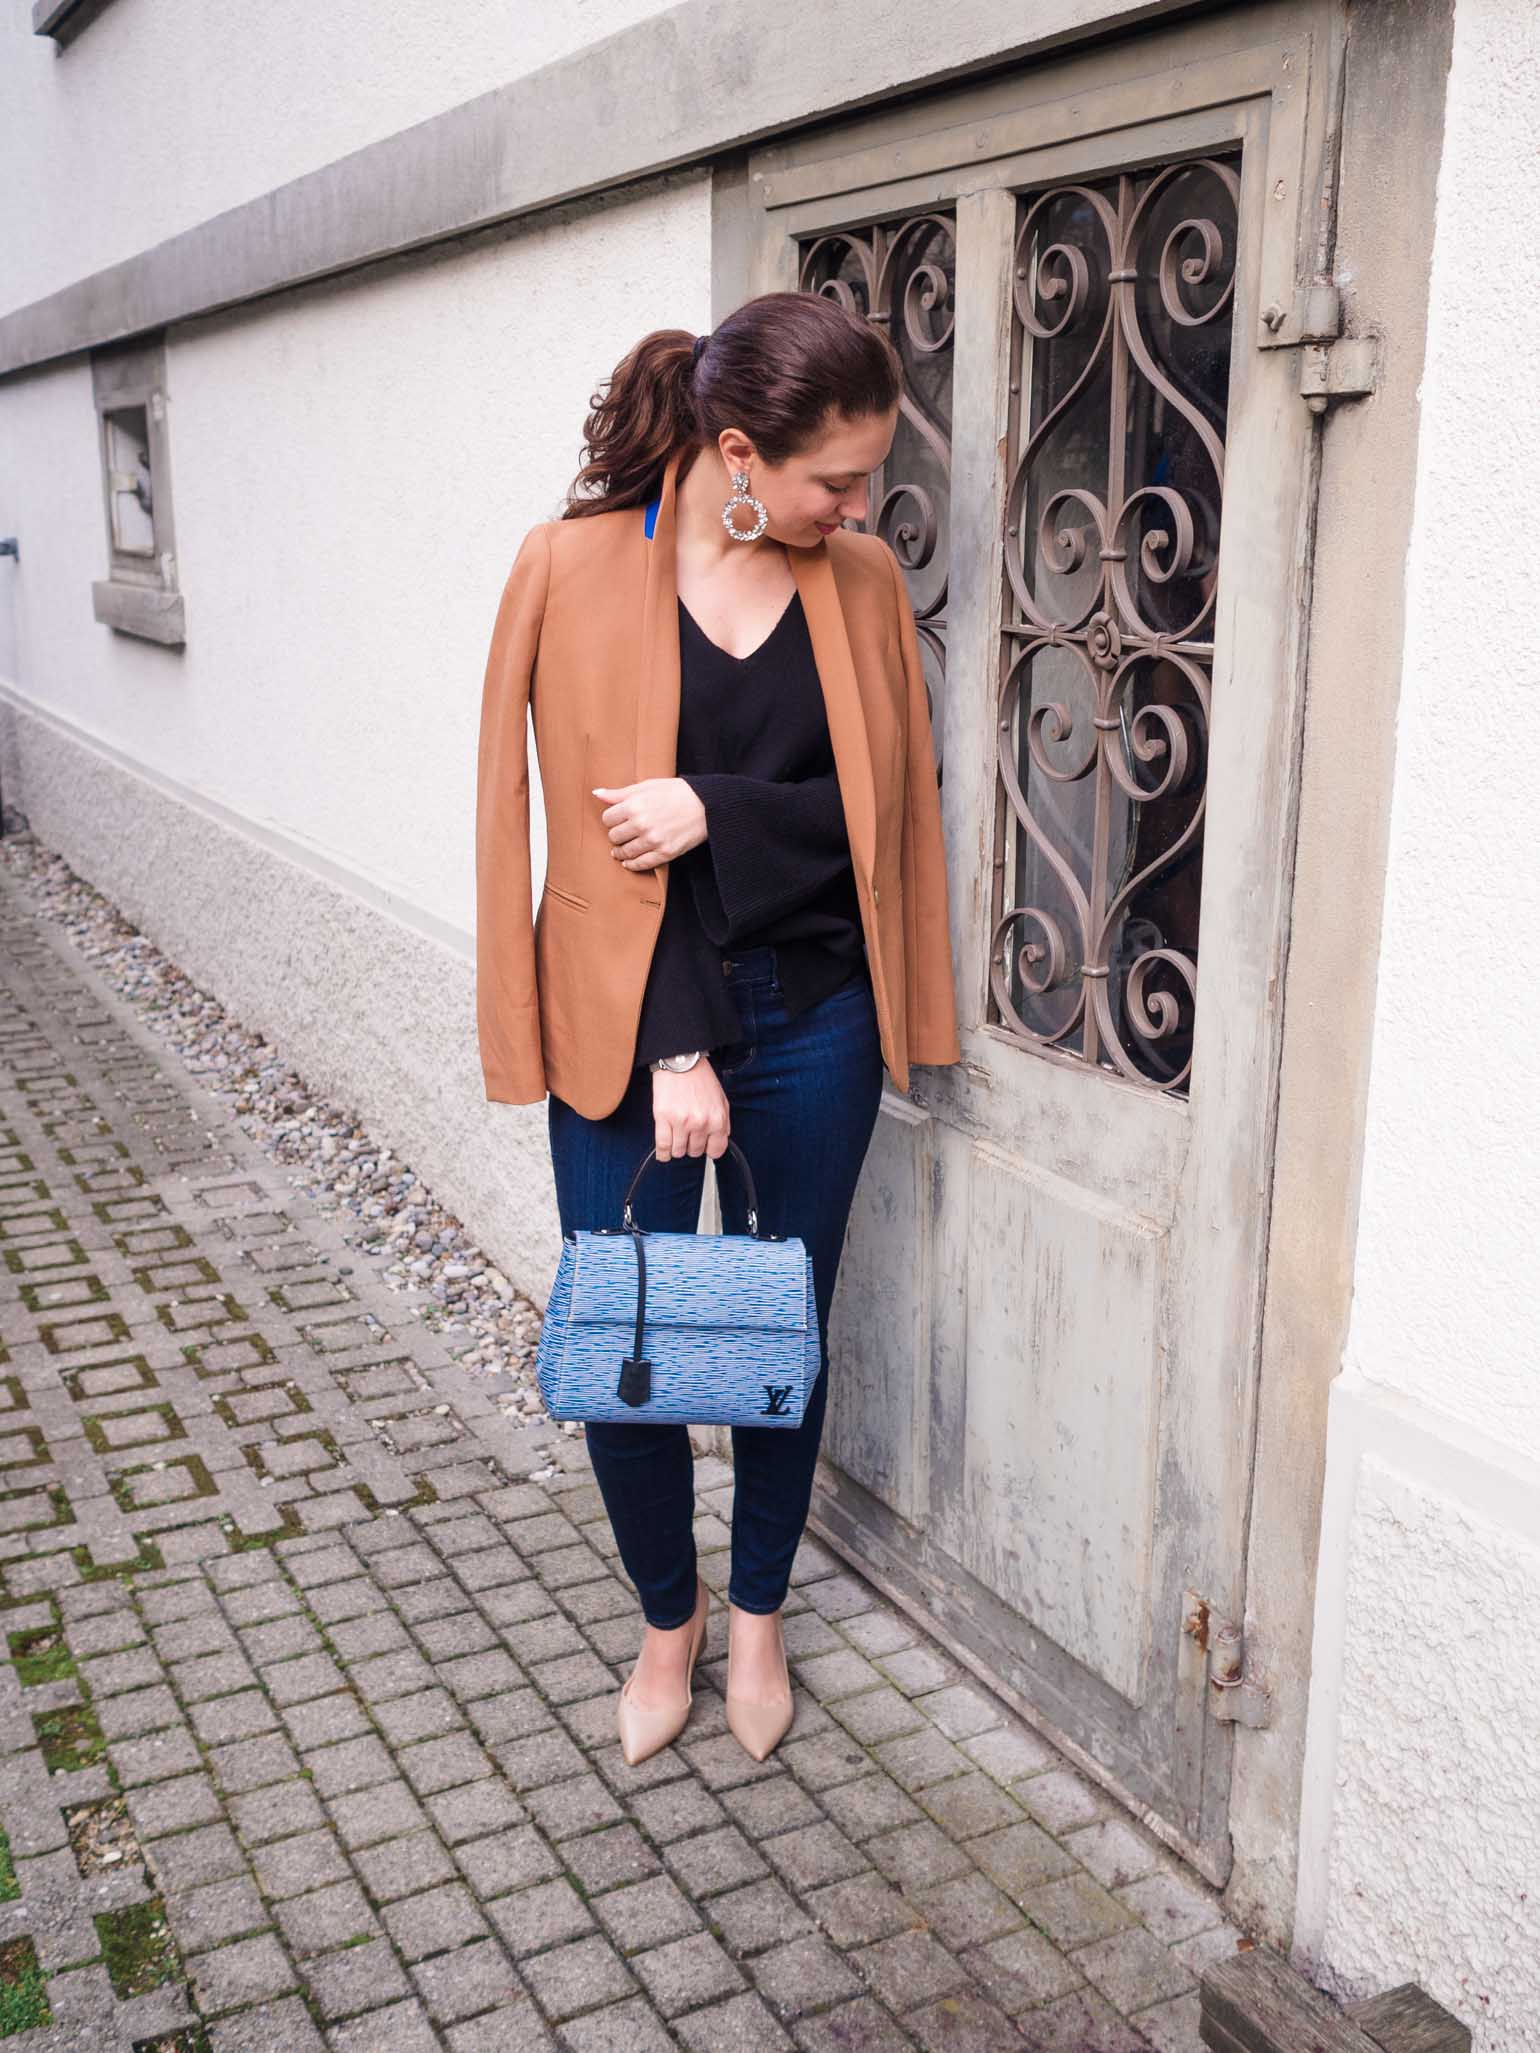 Cristina from The Brunette Nomad, Dallas and Swiss based fashion blogger, shares how to look instantly chic this season with a J.Crew camel blazer